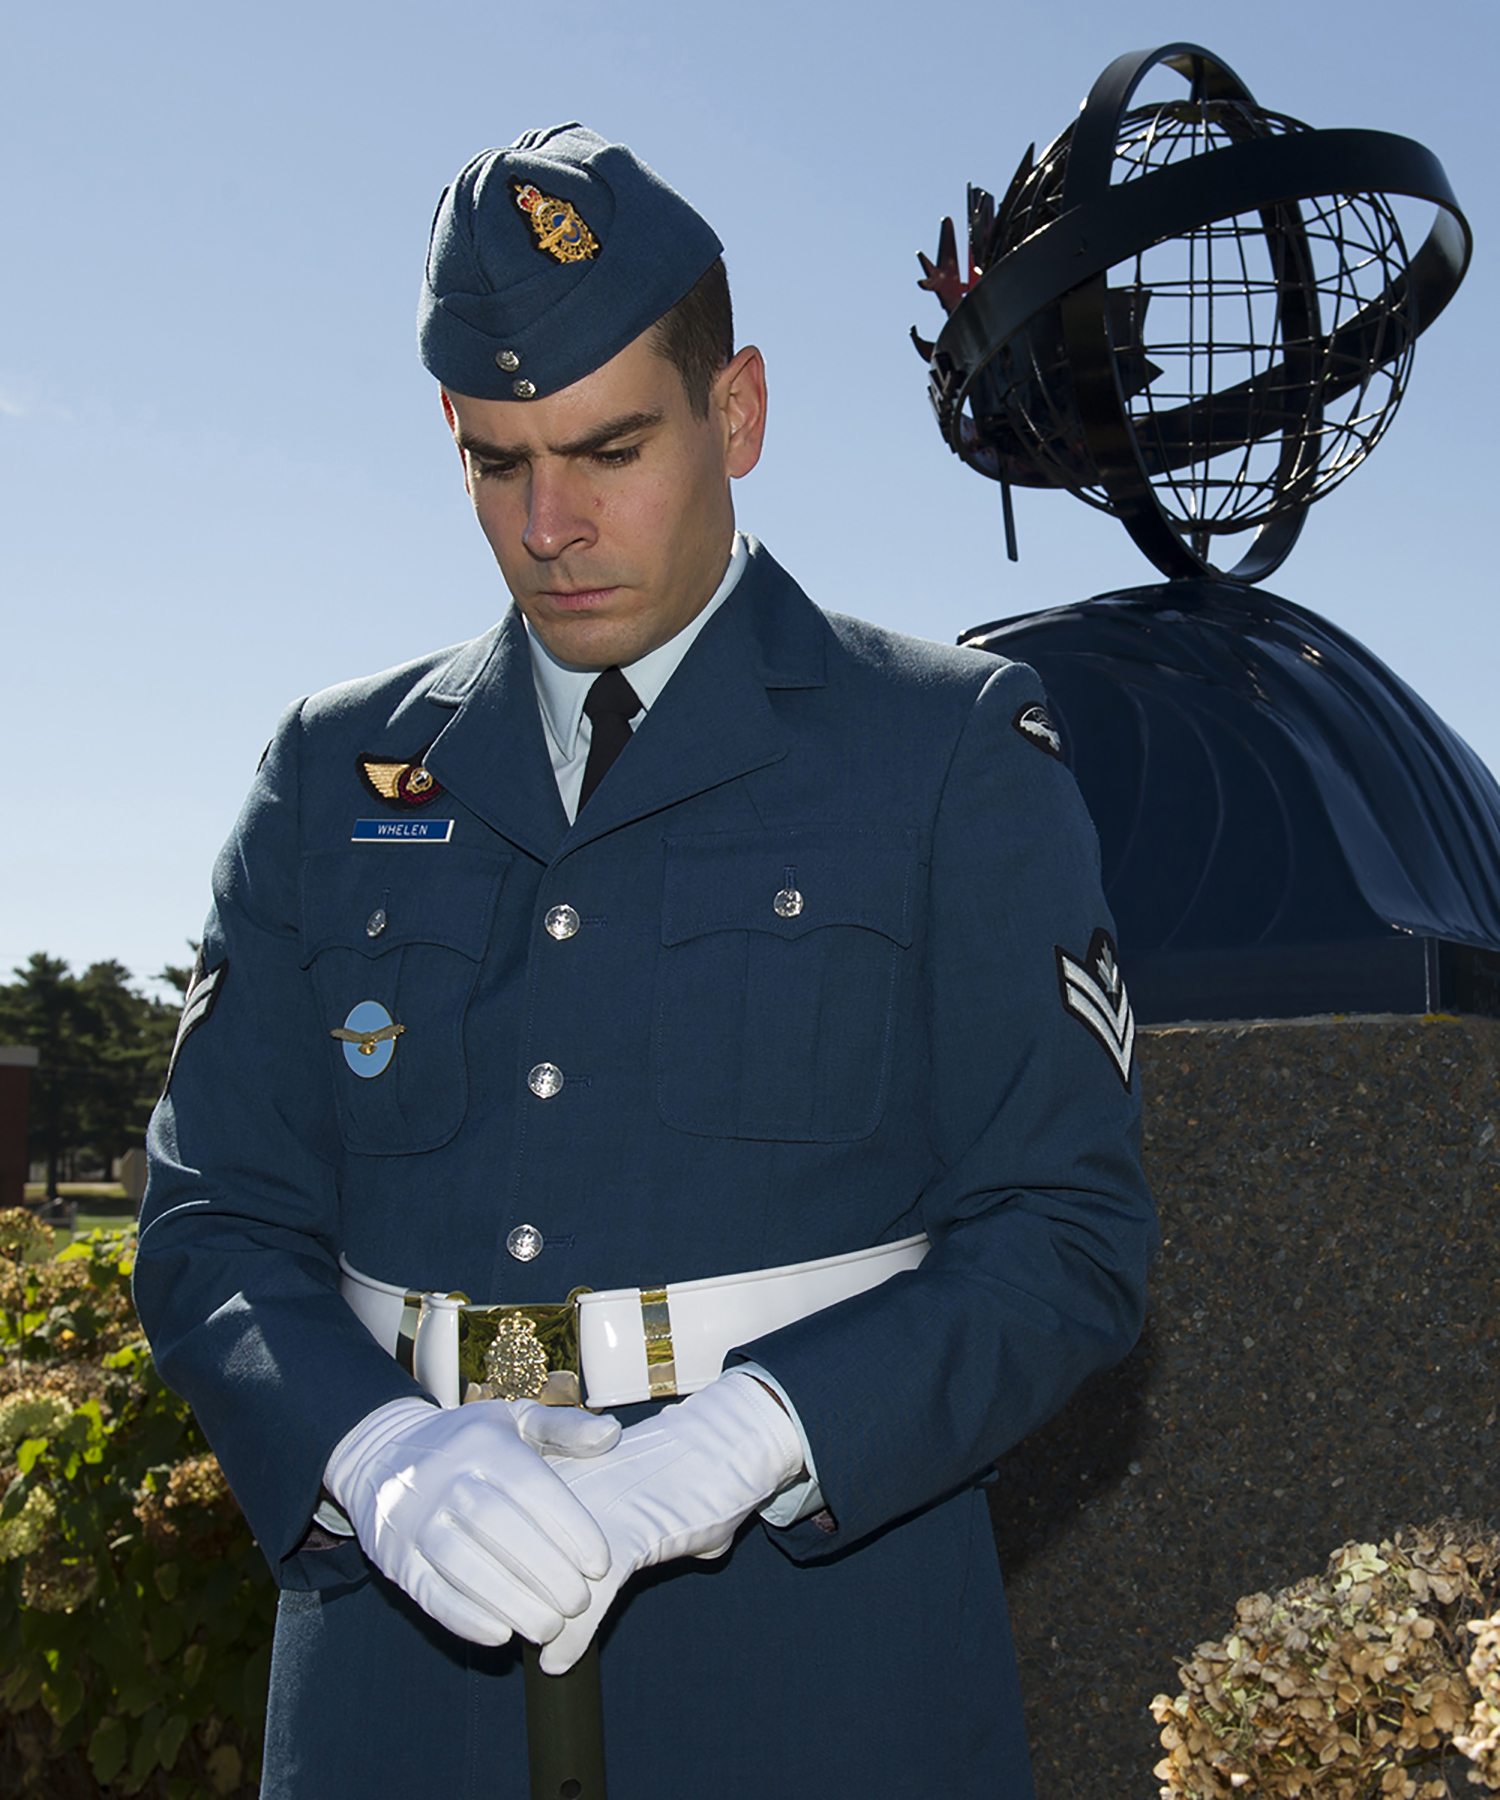 Master Corporal Tyler Whelen of 404 Long Range Patrol and Training Squadron stands vigil at the VP International memorial during the 2017 memorial service at 14 Wing Greenwood, Nova Scotia, on October 1, 2017. PHOTO: Master Corporal Rory Wilson, GD14-2017-0602-003